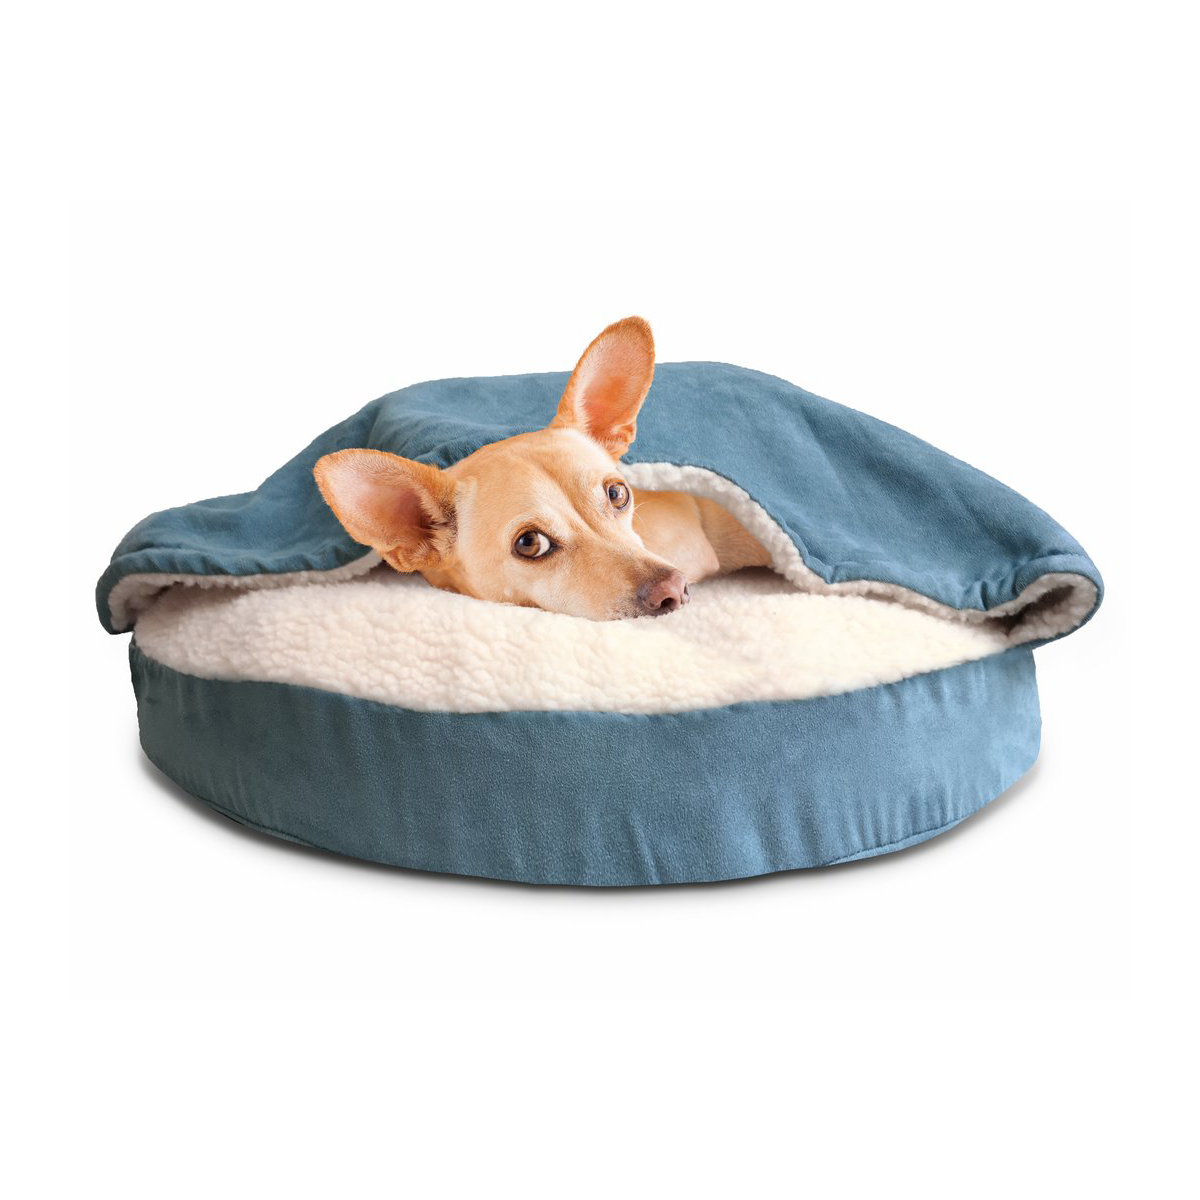 Pet Supply Stores, Dog Beds 2